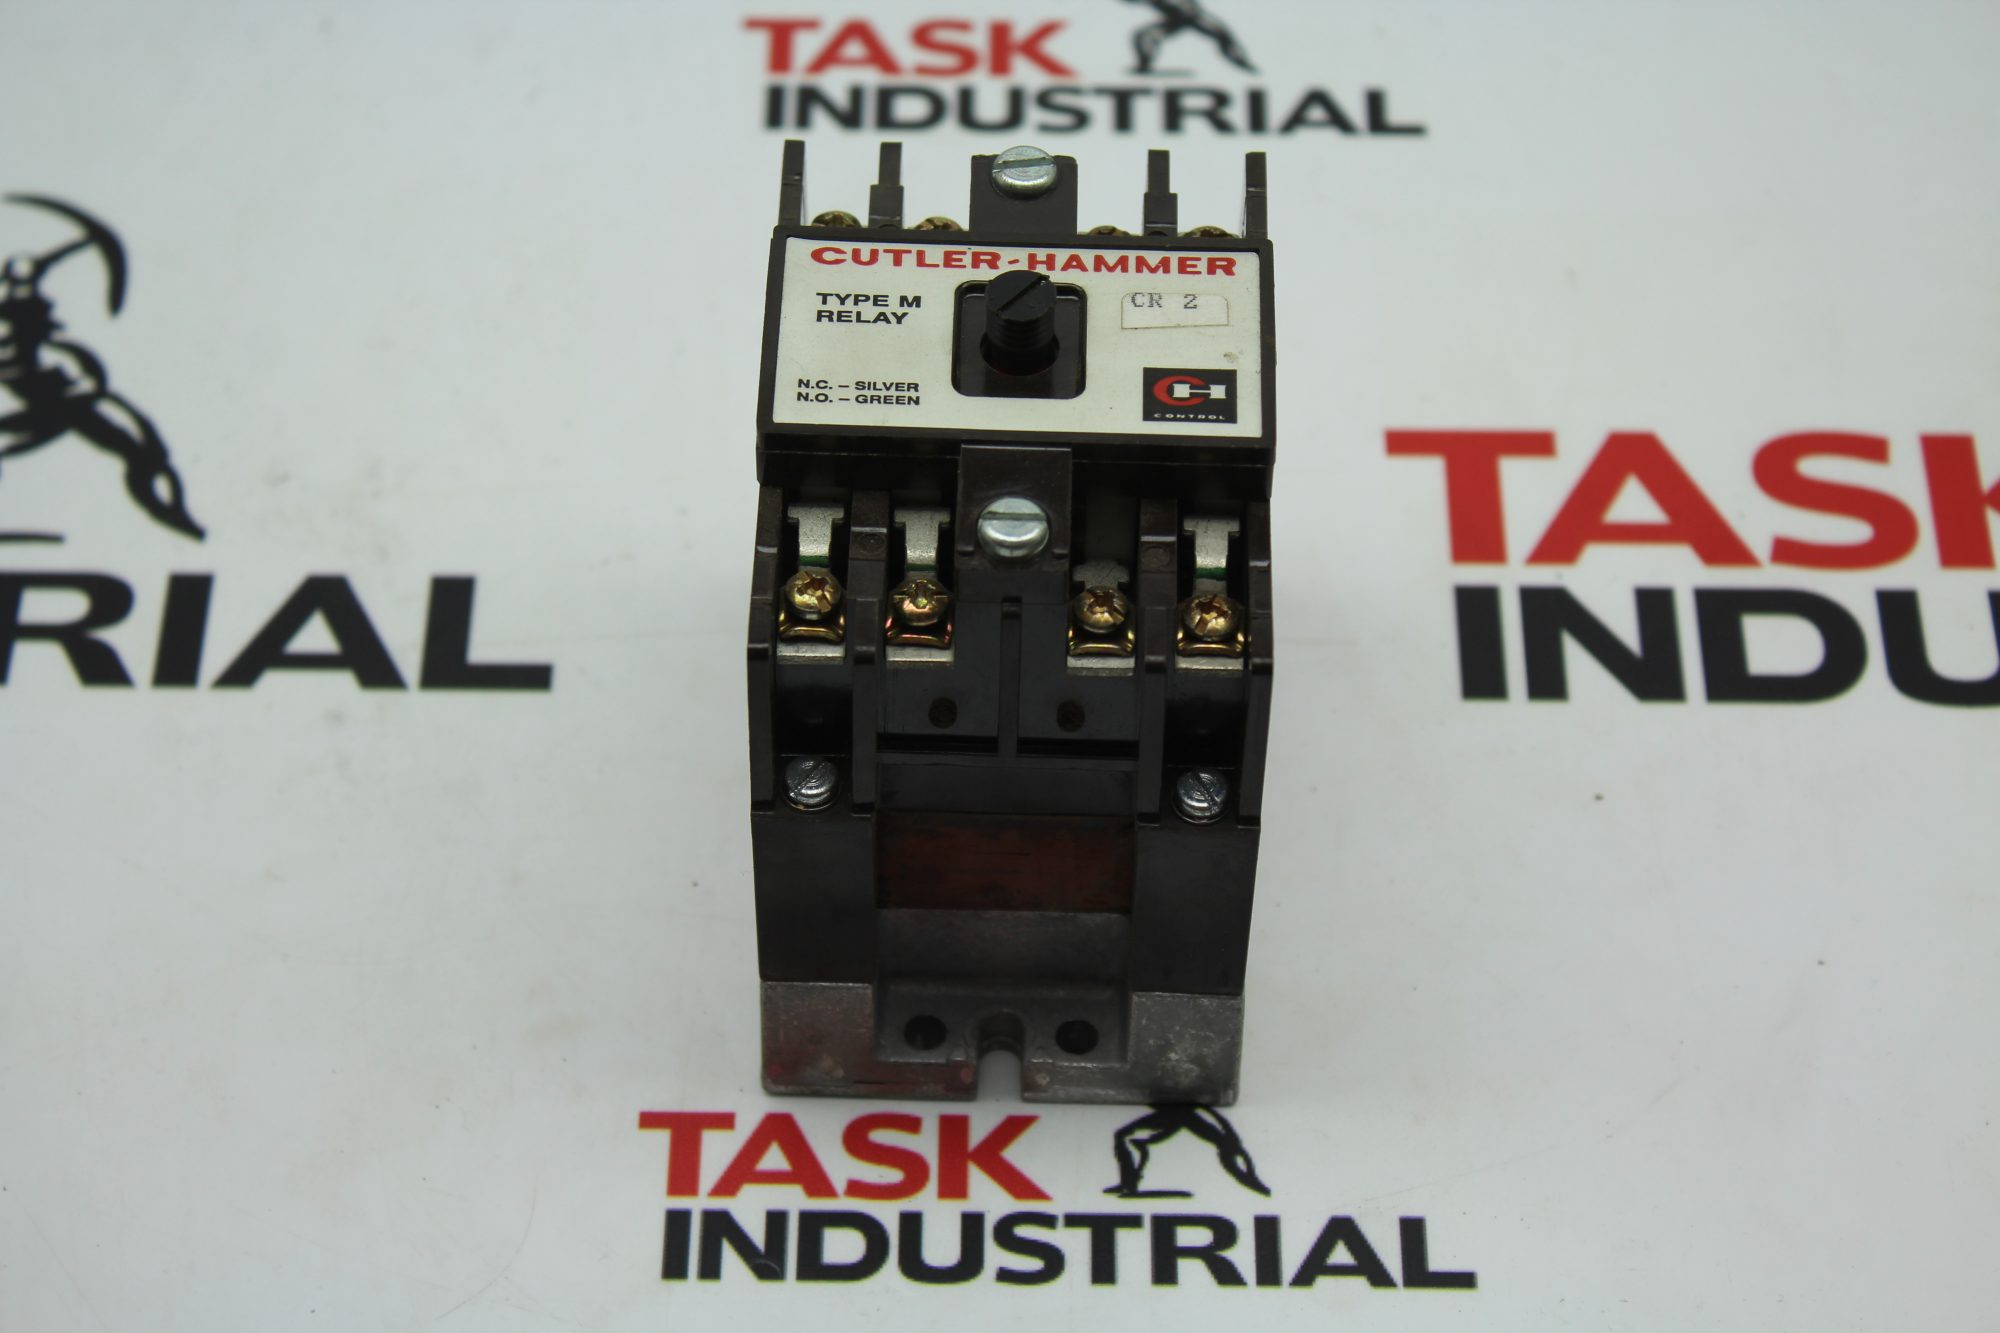 Cutler-Hammer Type M Relay CR 2